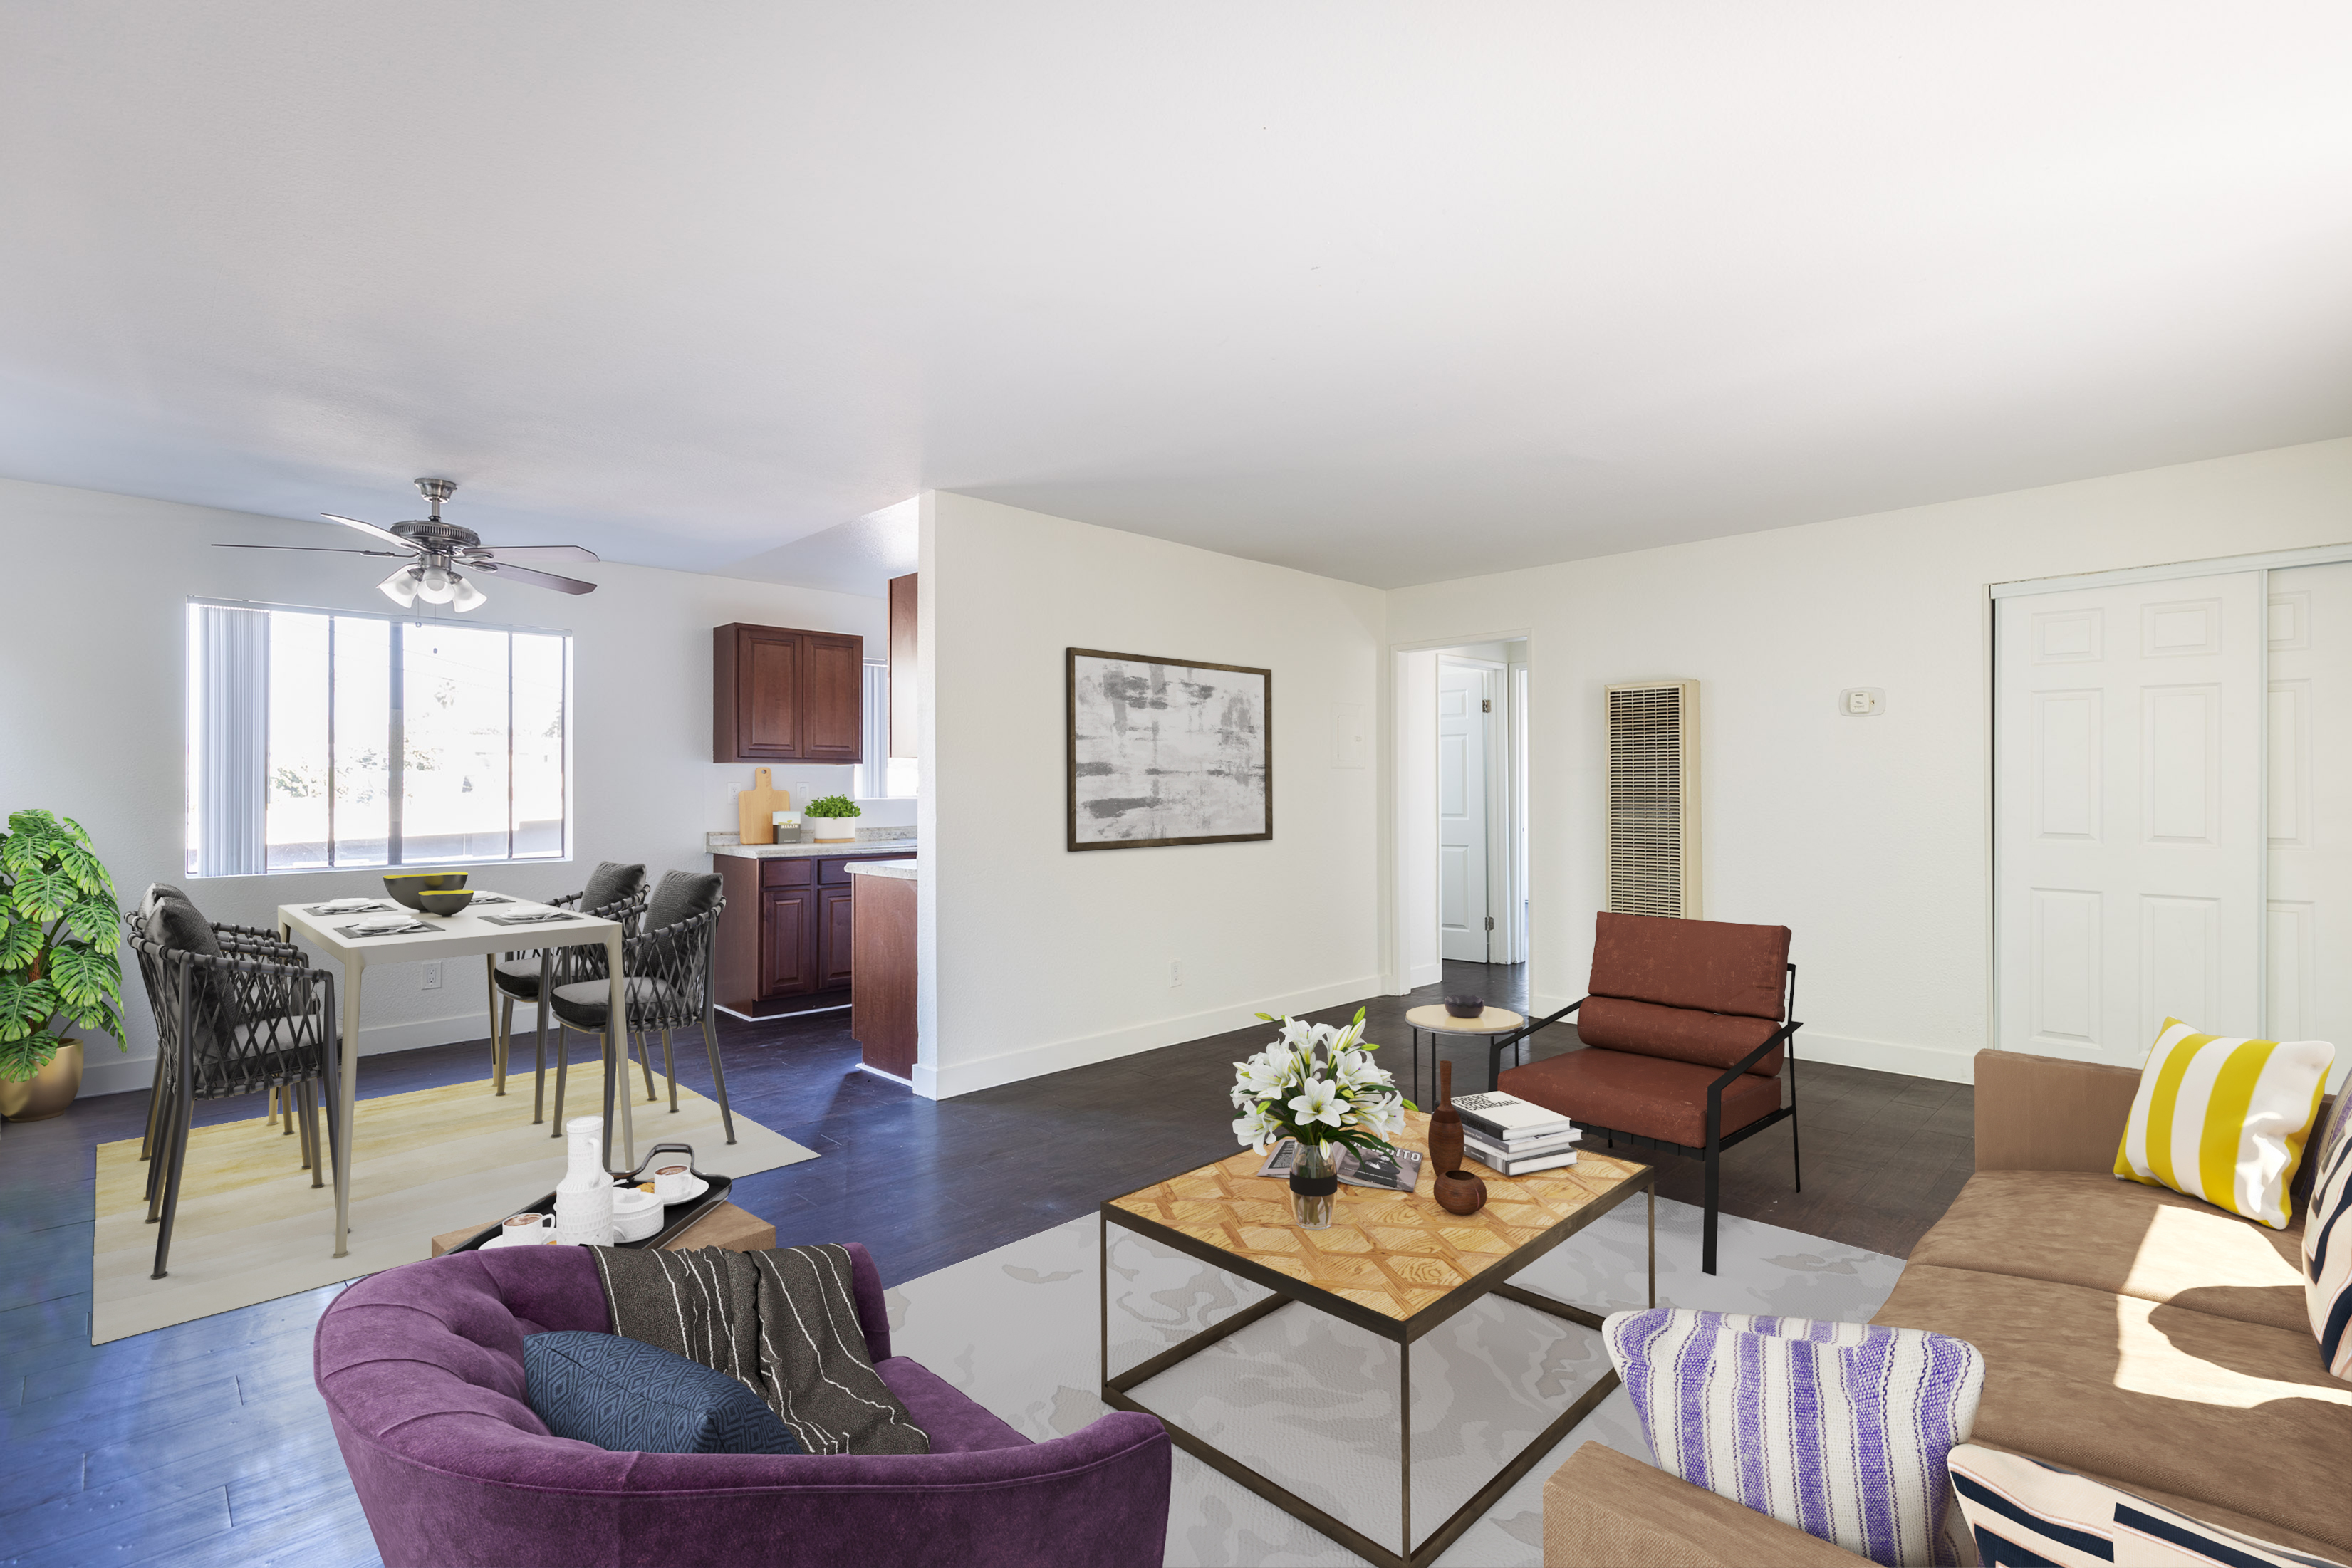 2BD/1BA Inglewood Beauty With On-Site Laundry and Gated Parking